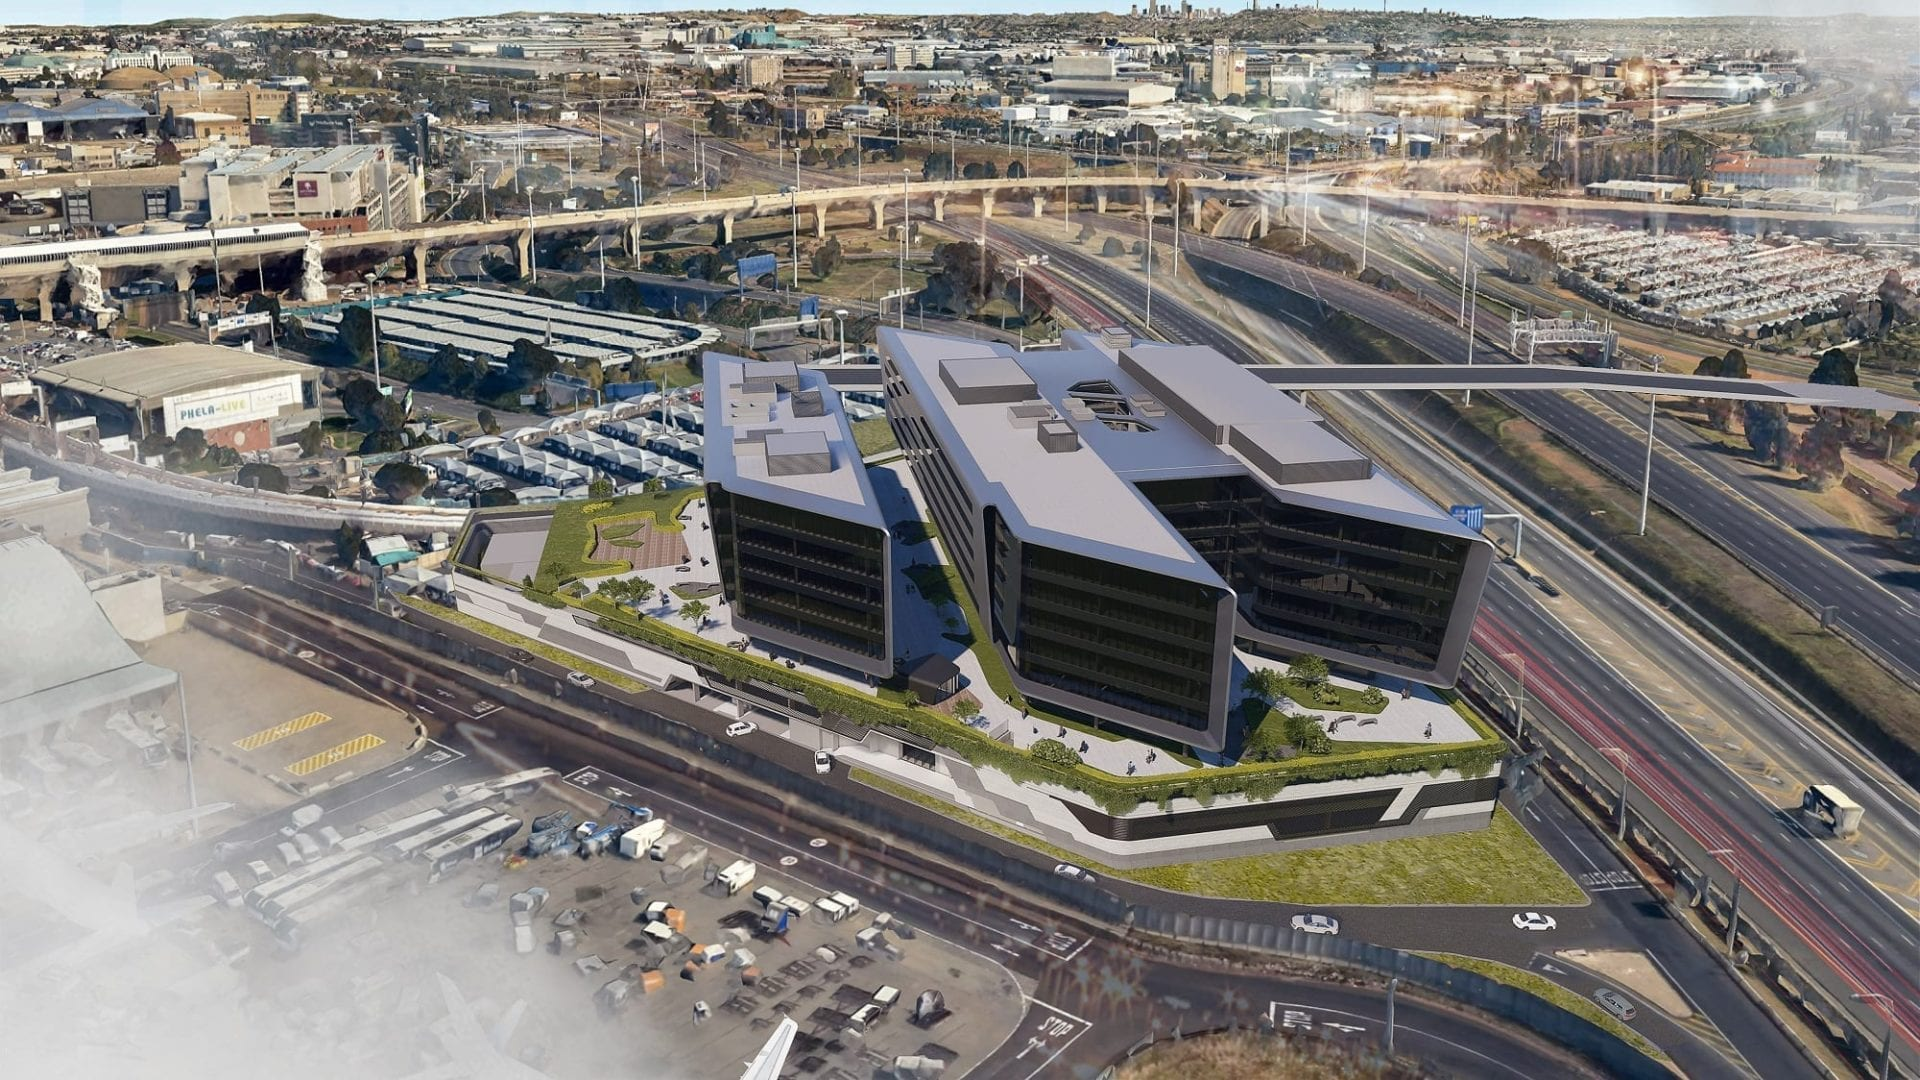 O.R Tambo unveils first phase of mega-mixed use development